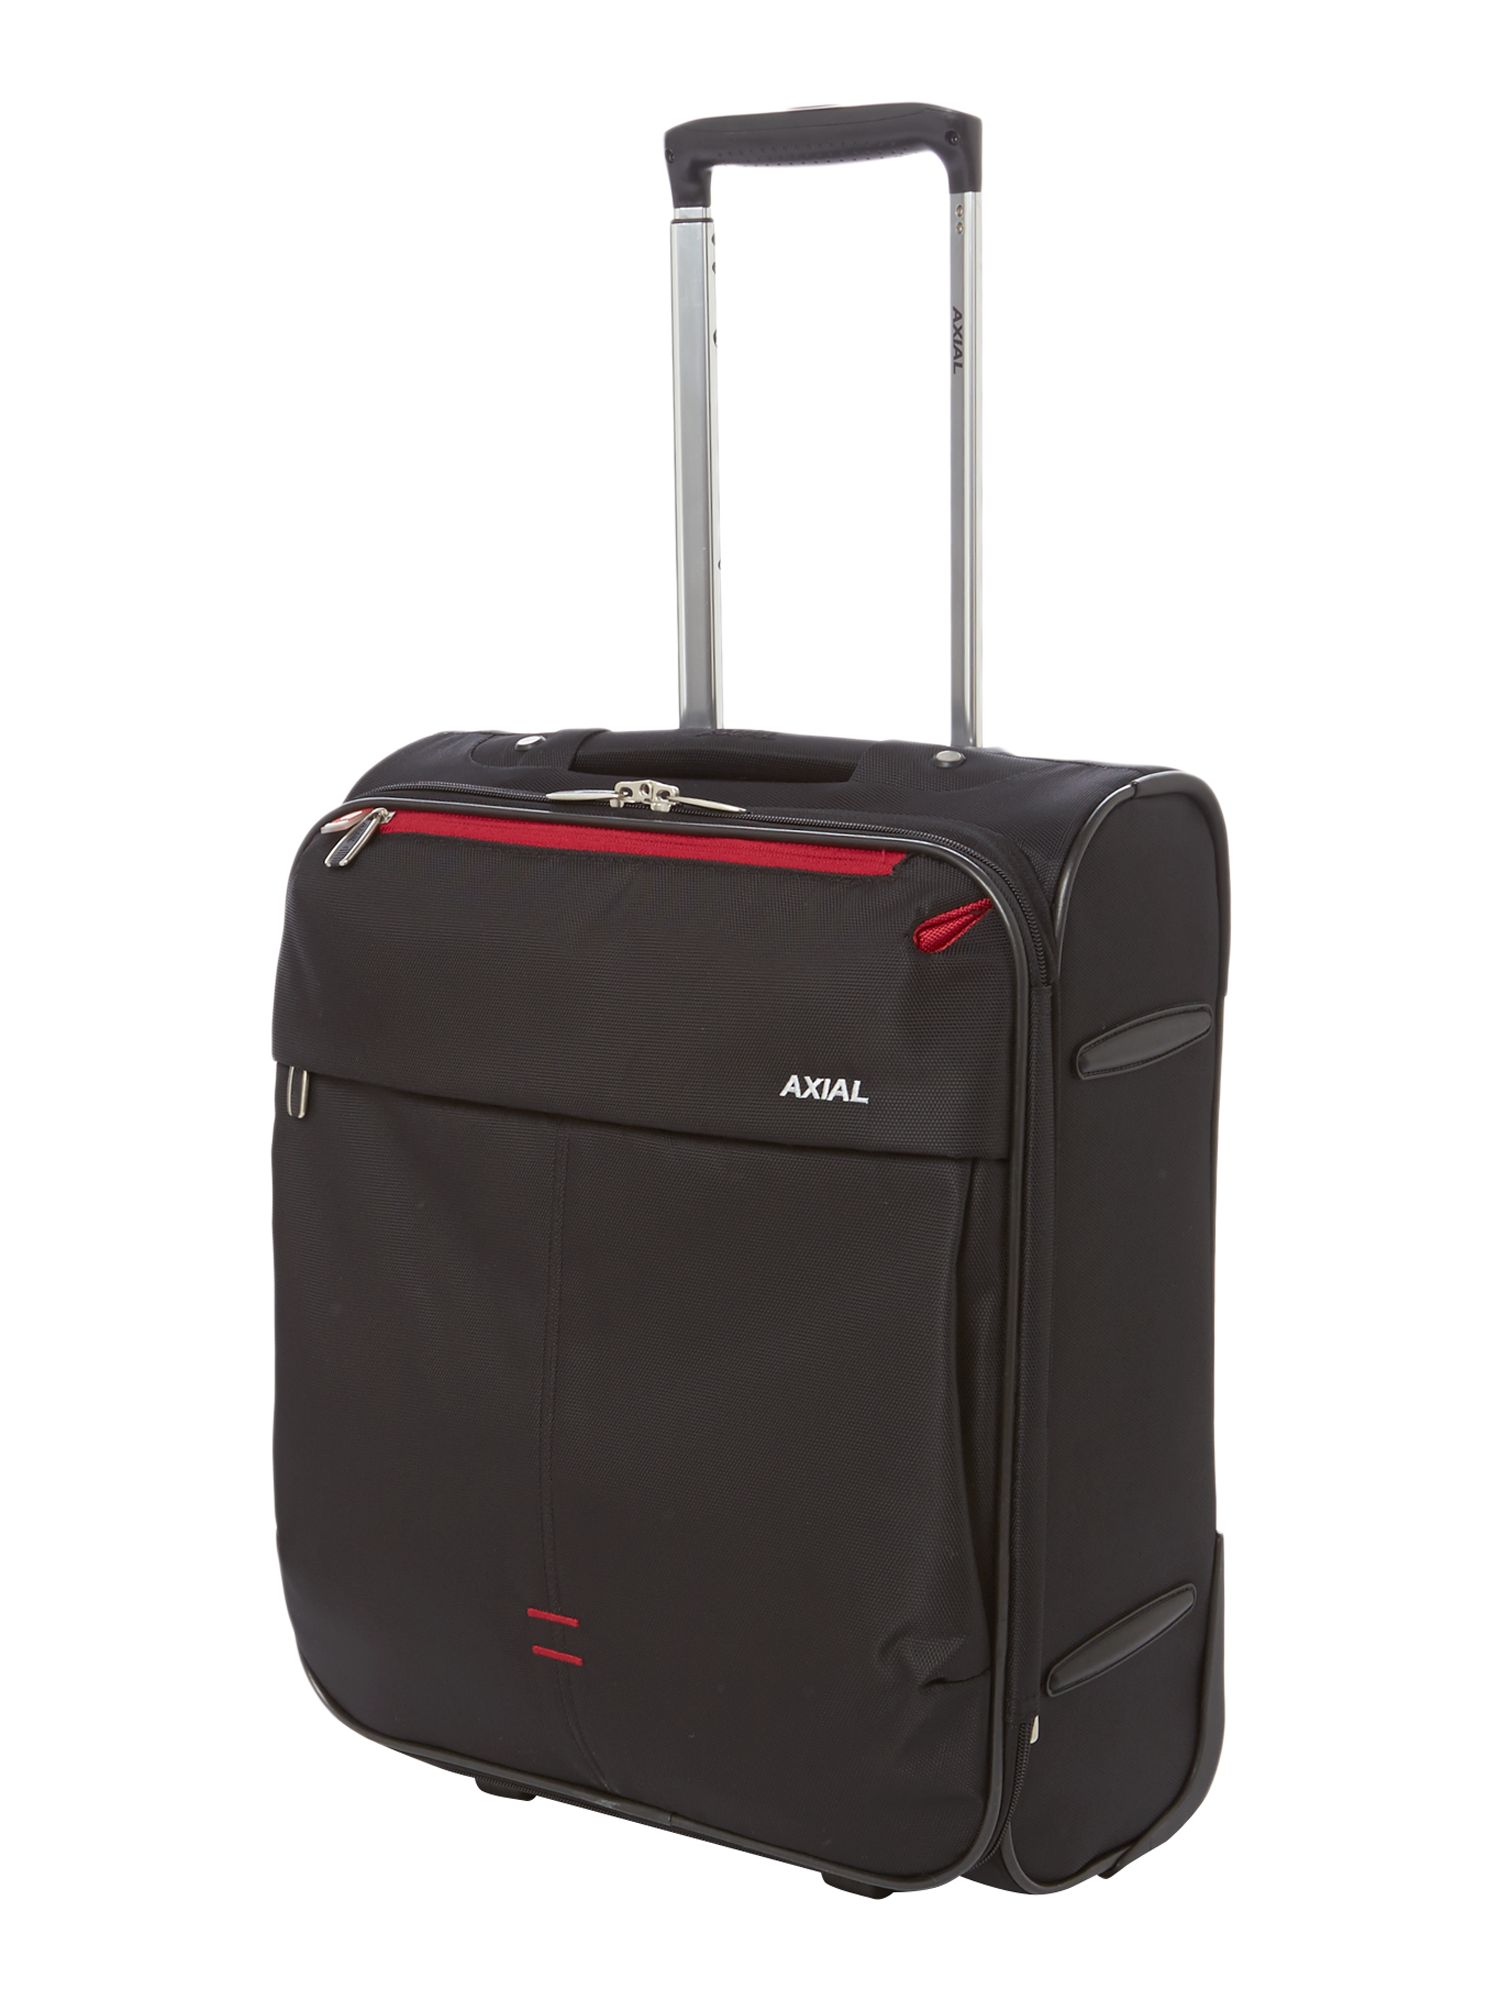 Axial black 2 wheels soft cabin suitcase